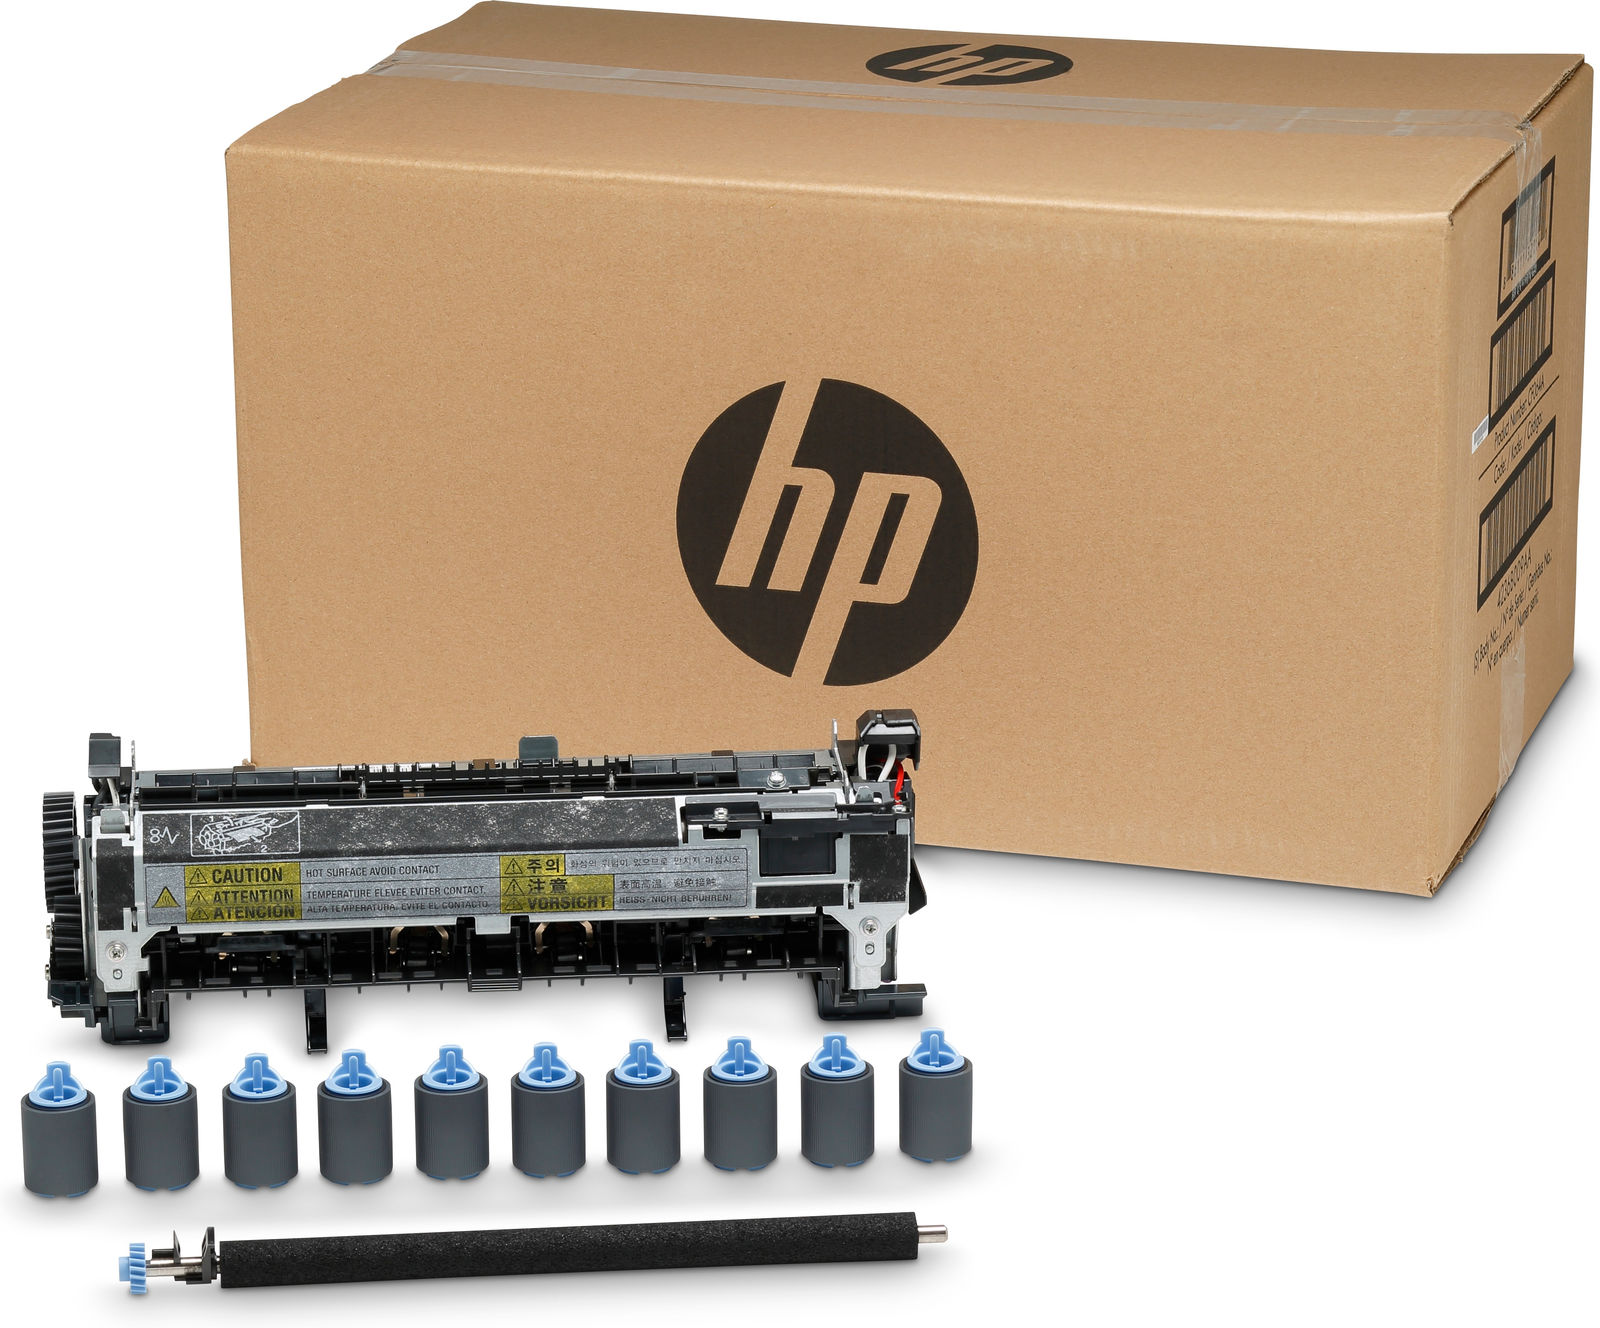 RM1-8396-270CN, HP Maintenance Kit